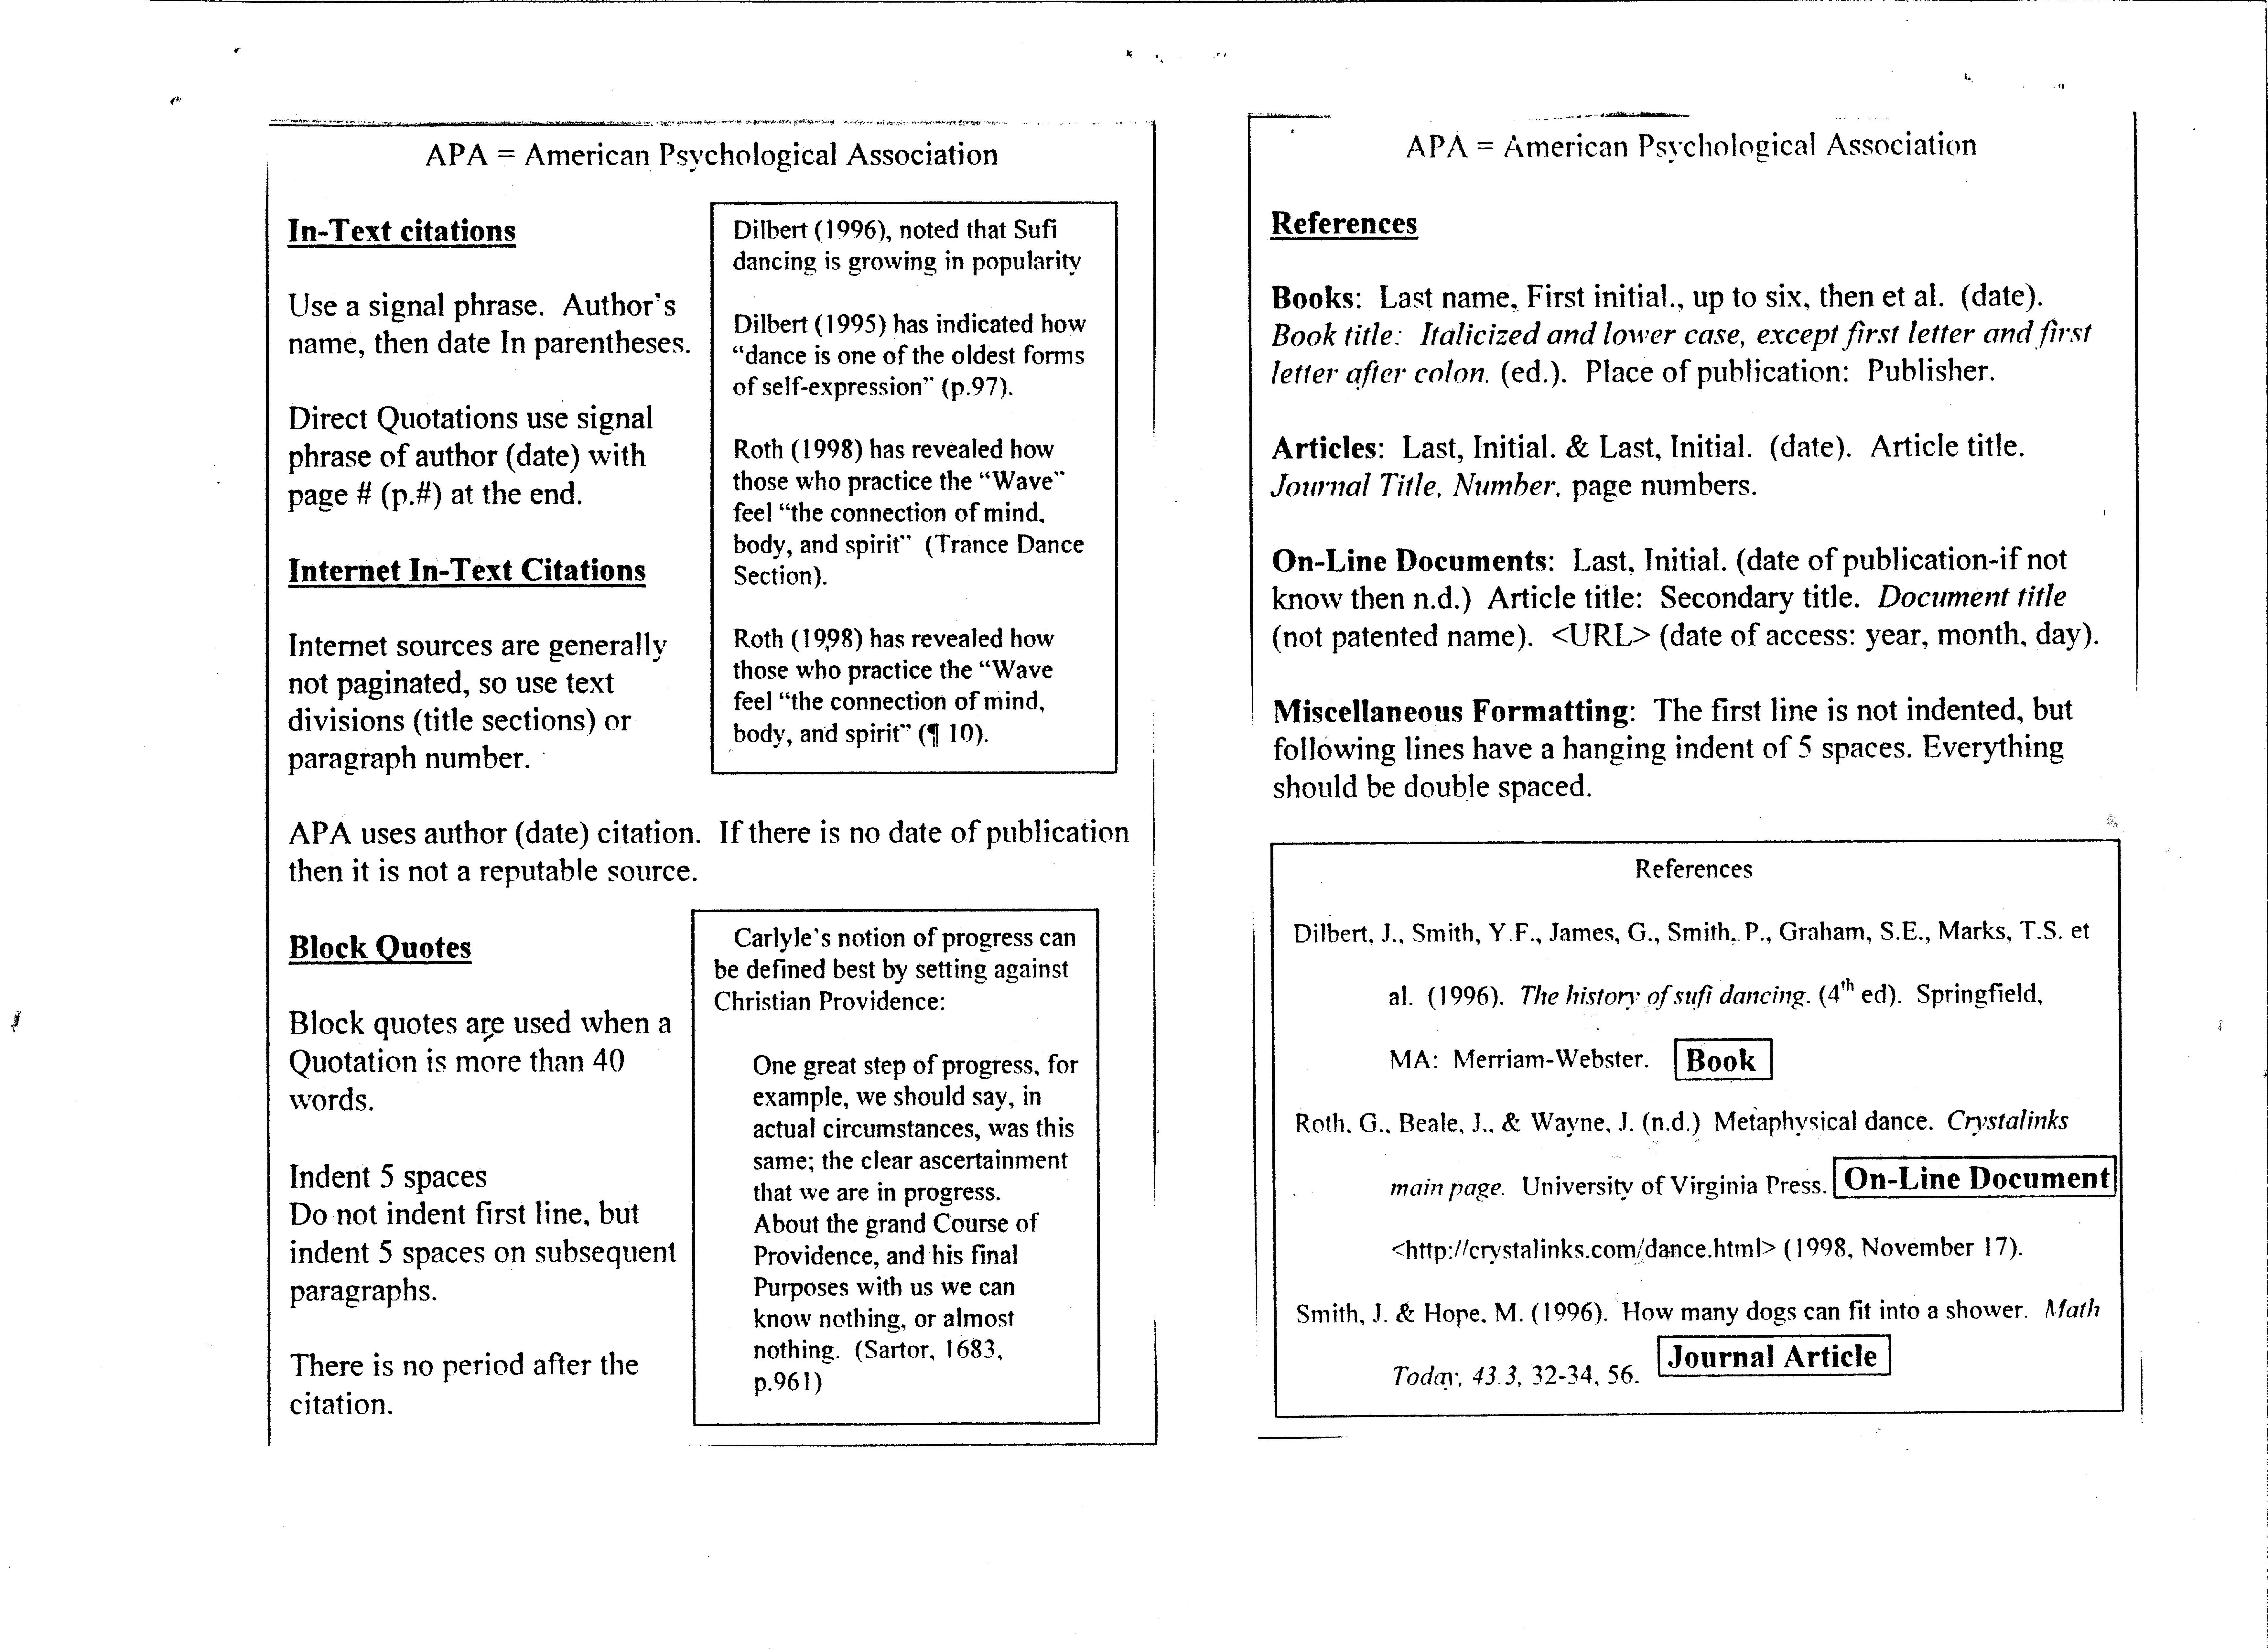 022 Apa Style Research Papermat Examples 618589 Imposing Format For Paper Layout Of A Sample Argumentative Formatting Youtube Full